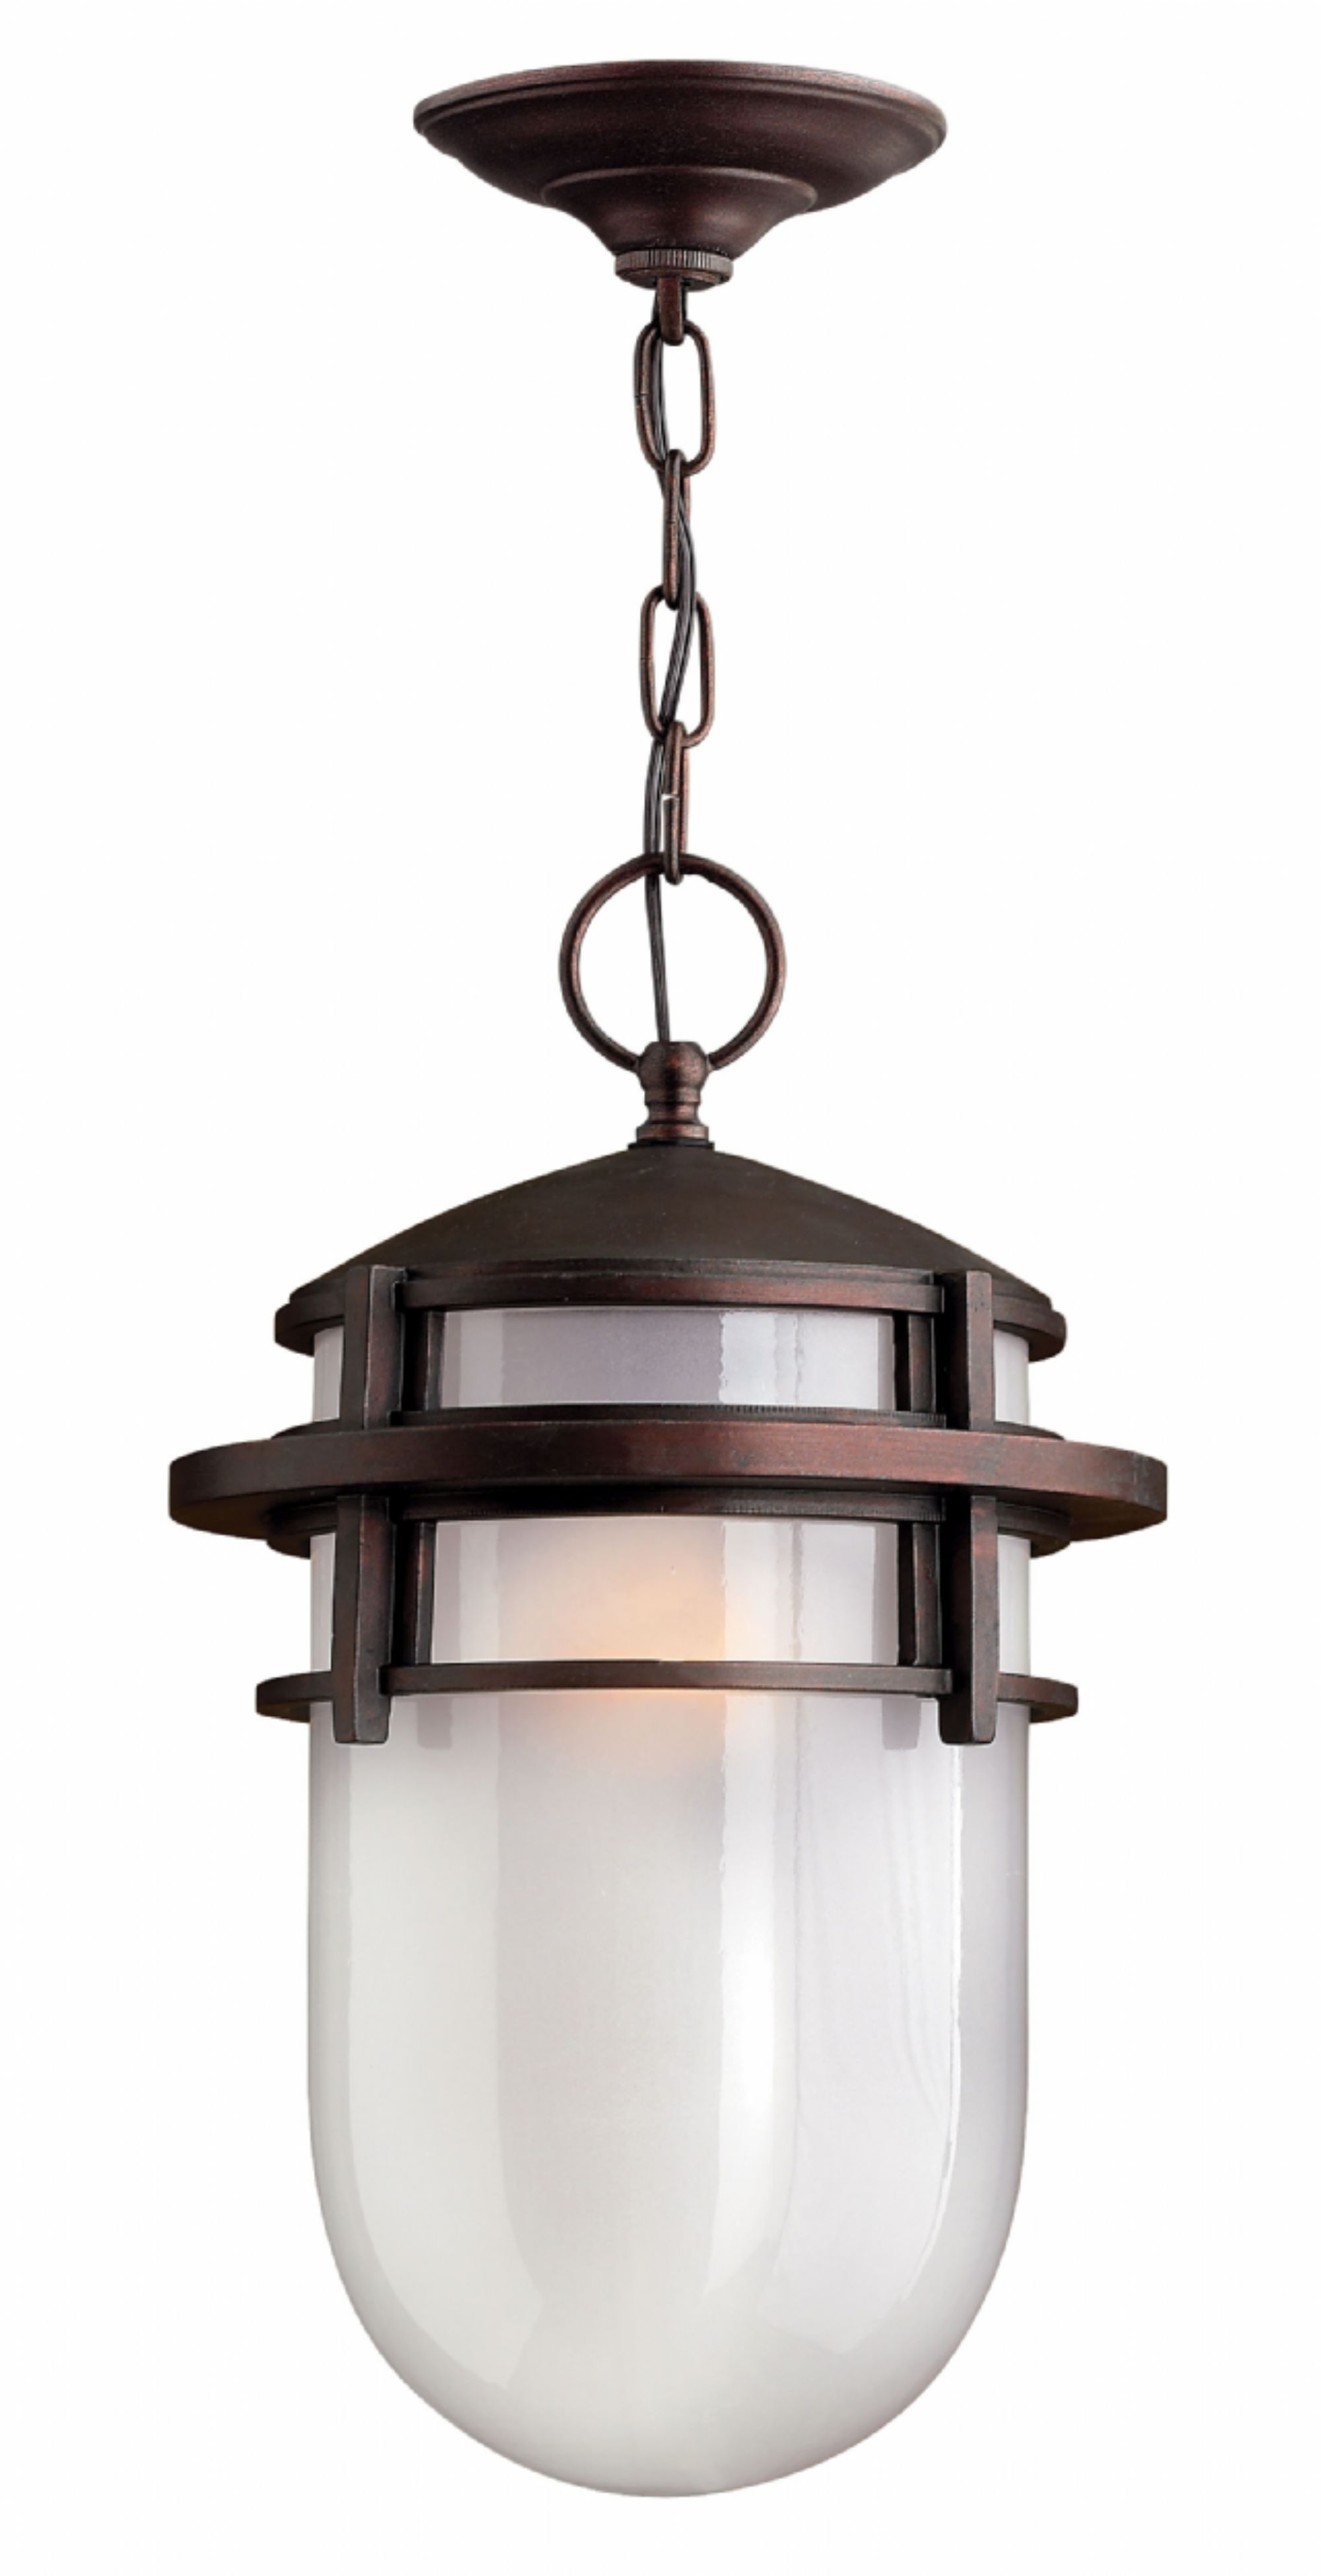 Hinkley Outdoor Ceiling Lights Regarding Widely Used Victorian Bronze Reef > Exterior Ceiling Mount (View 13 of 20)